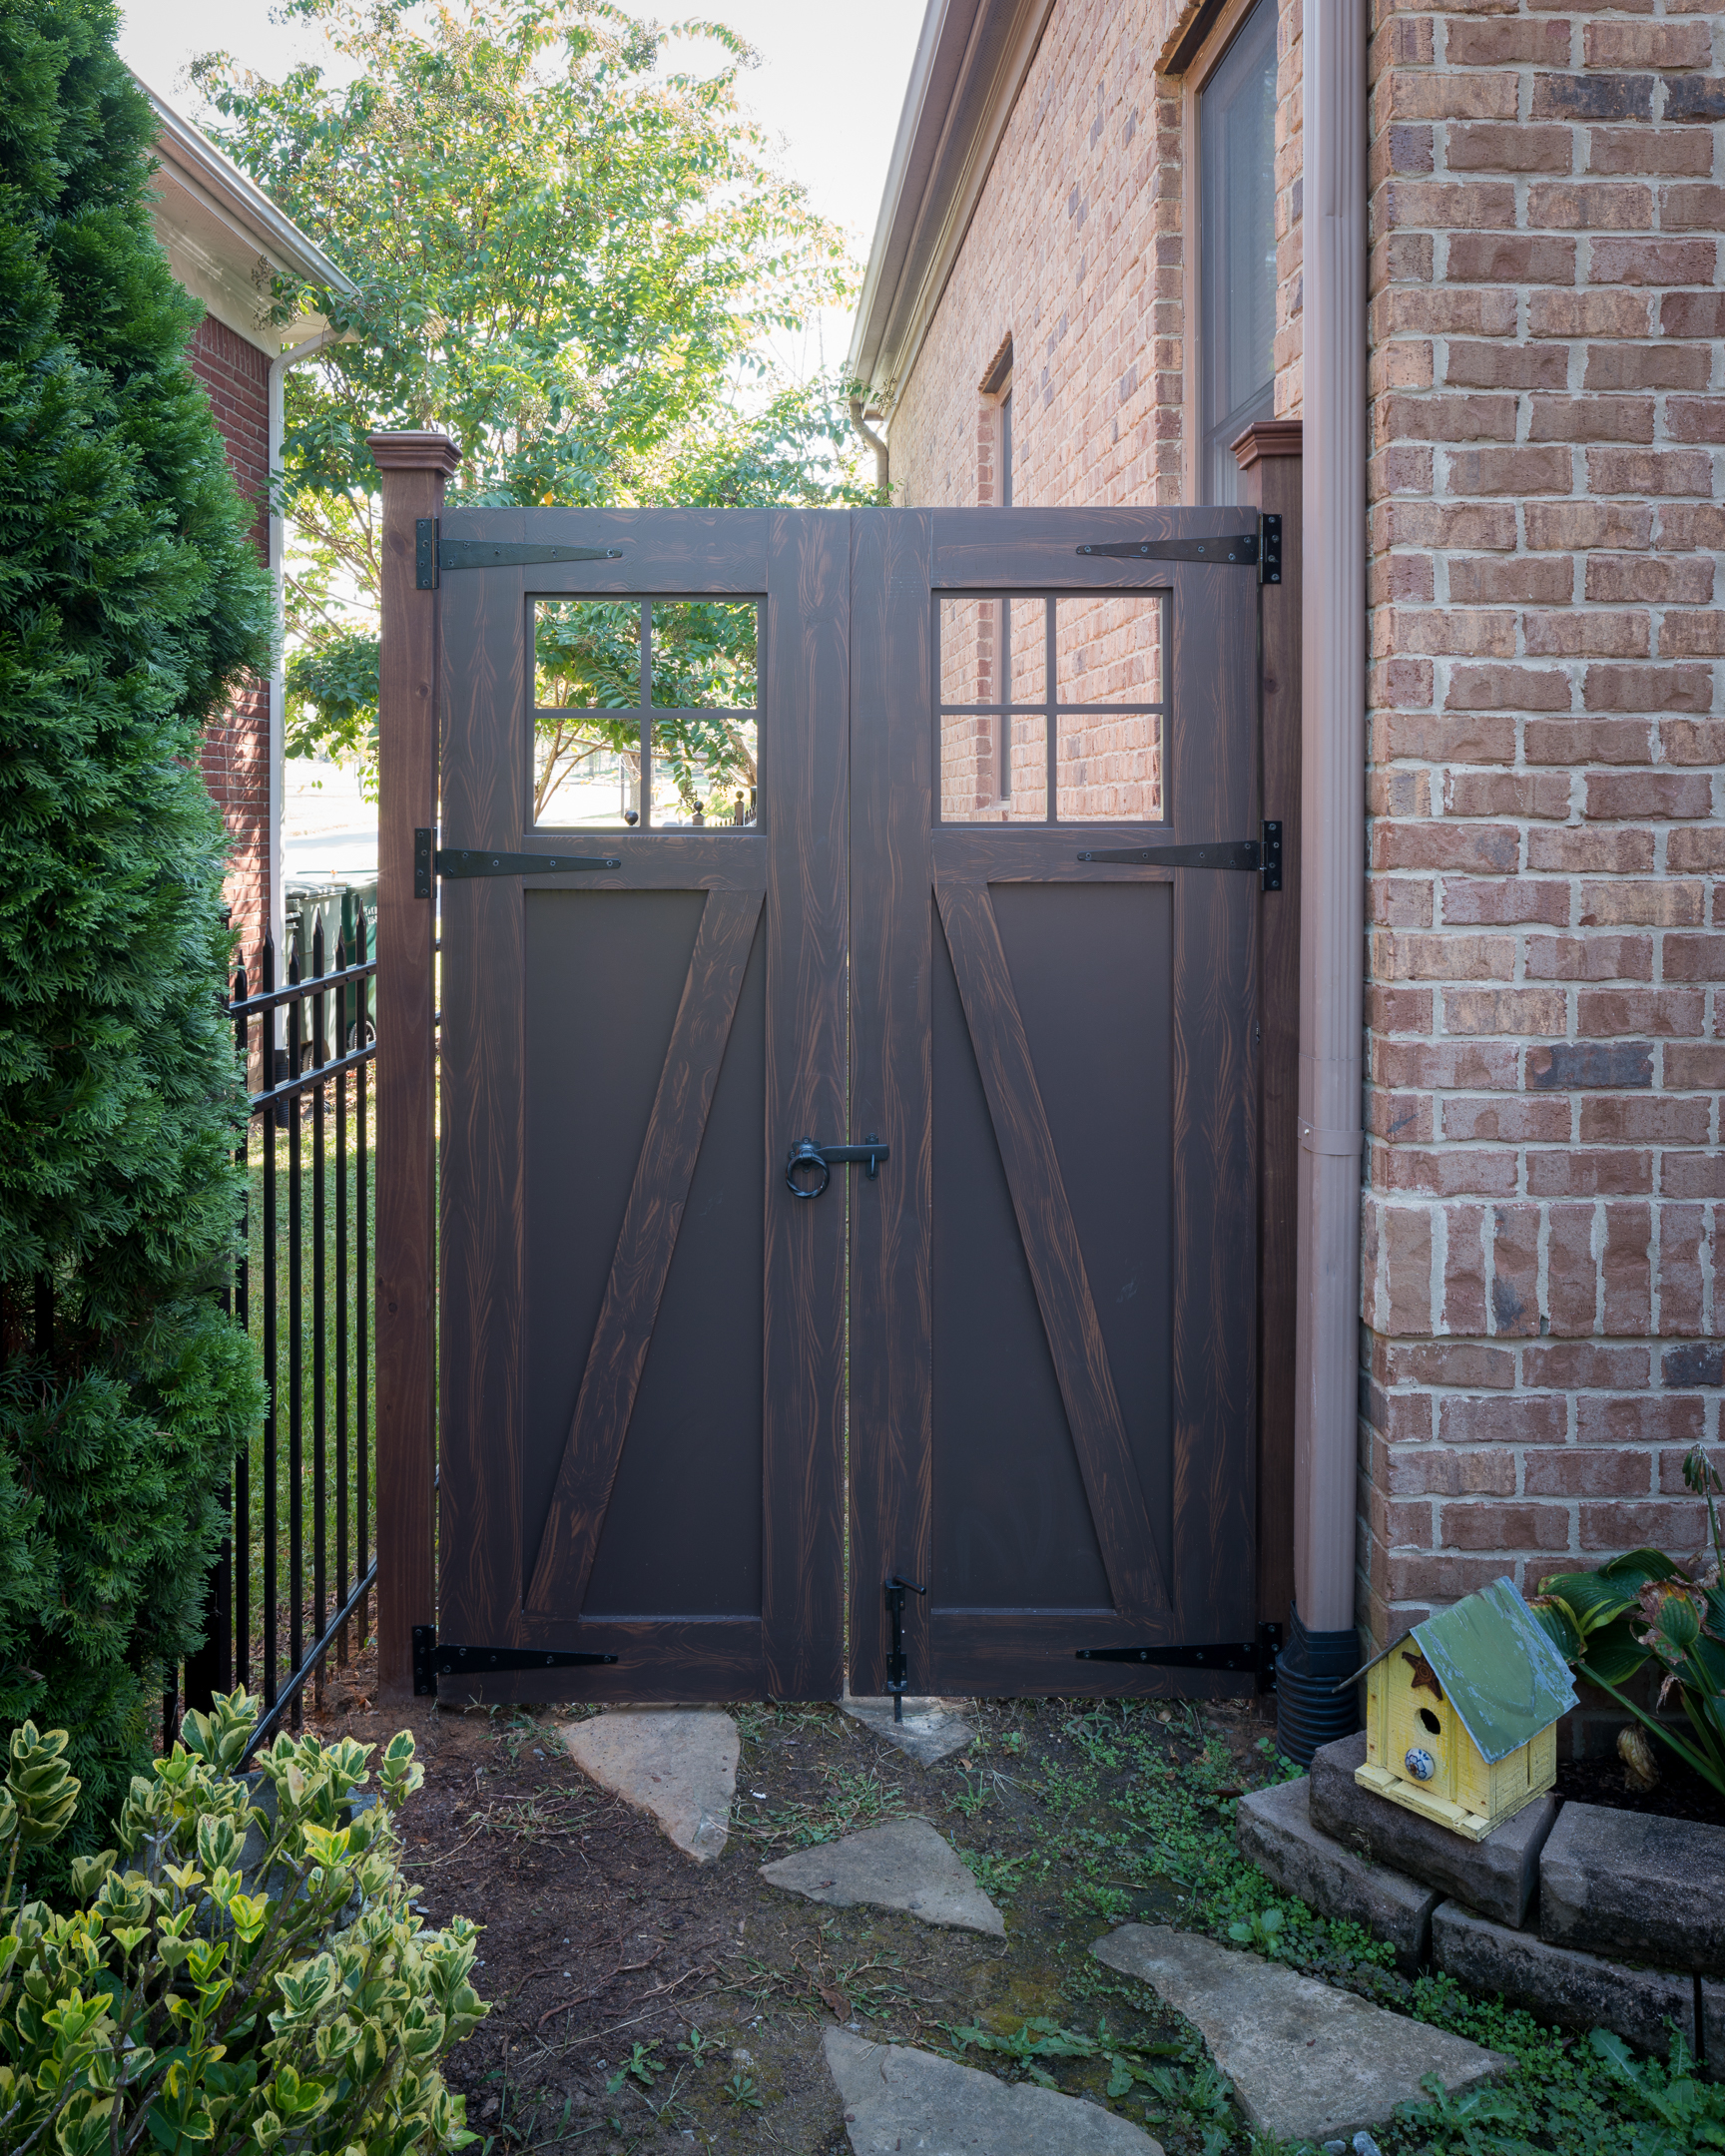 Express your Personality... With a GATE! - The Porch Company